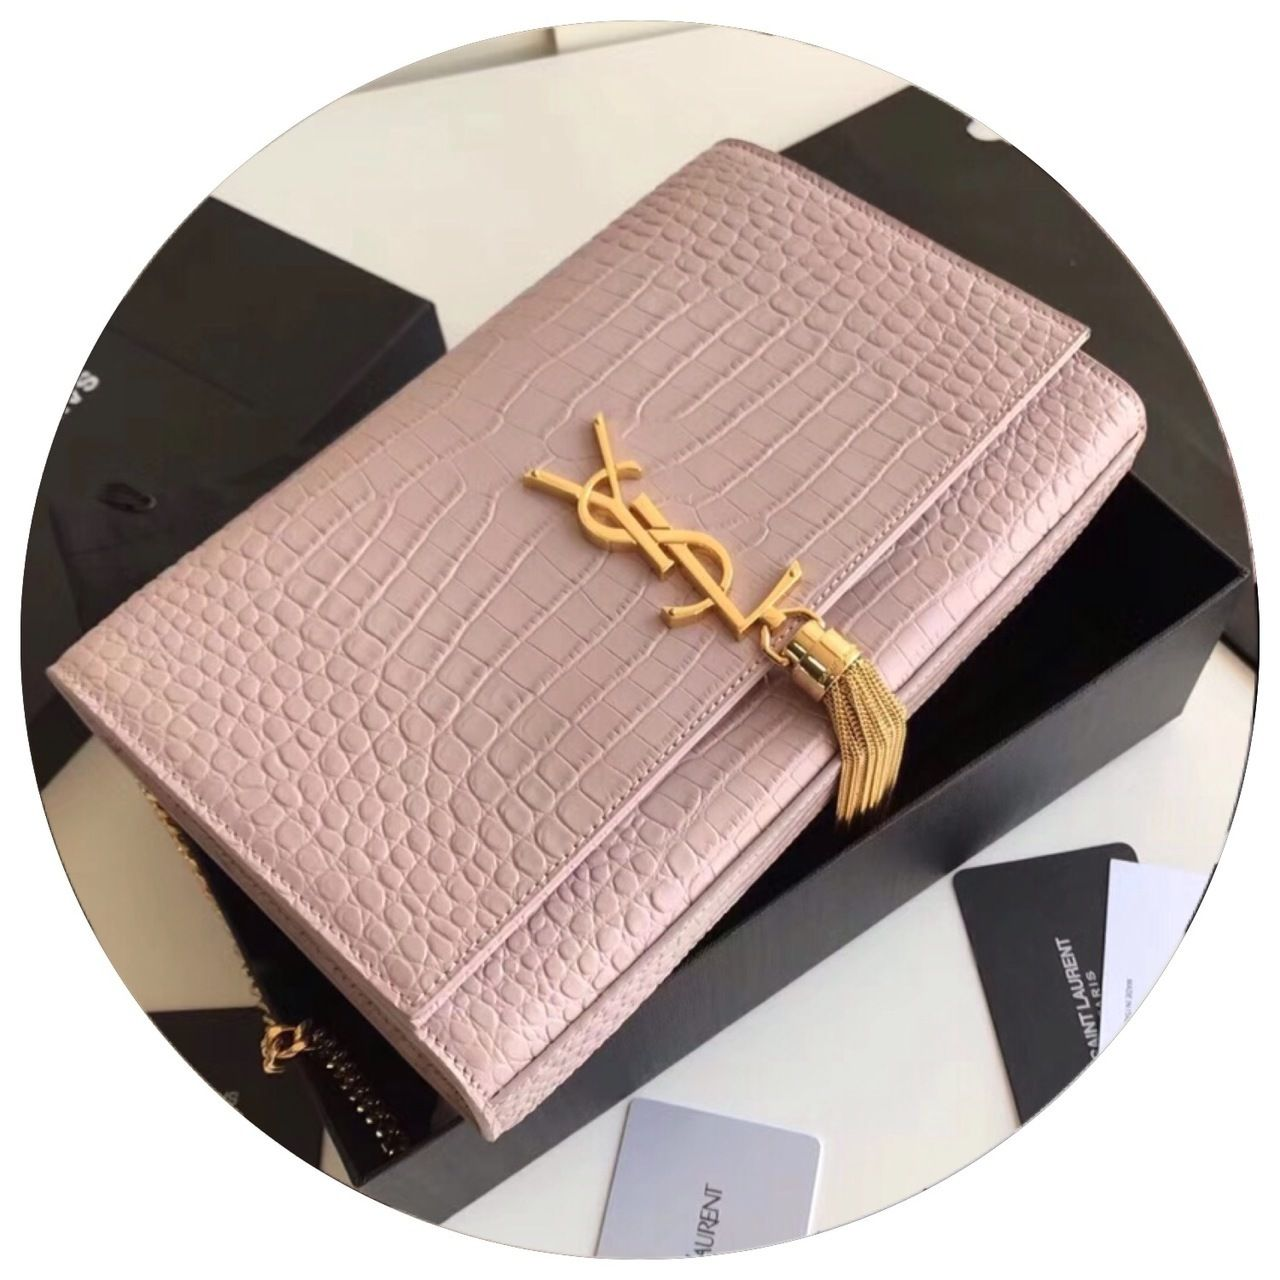 d3fd0cd08335 Saint Laurent CLASSIC MEDIUM KATE TASSEL SATCHEL IN POWDER PINK CROCODILE  EMBOSSED SHINY LEATHER WITH GOLD HARDWARE - Bella Vita Moda #ysl bag  #ysllover ...